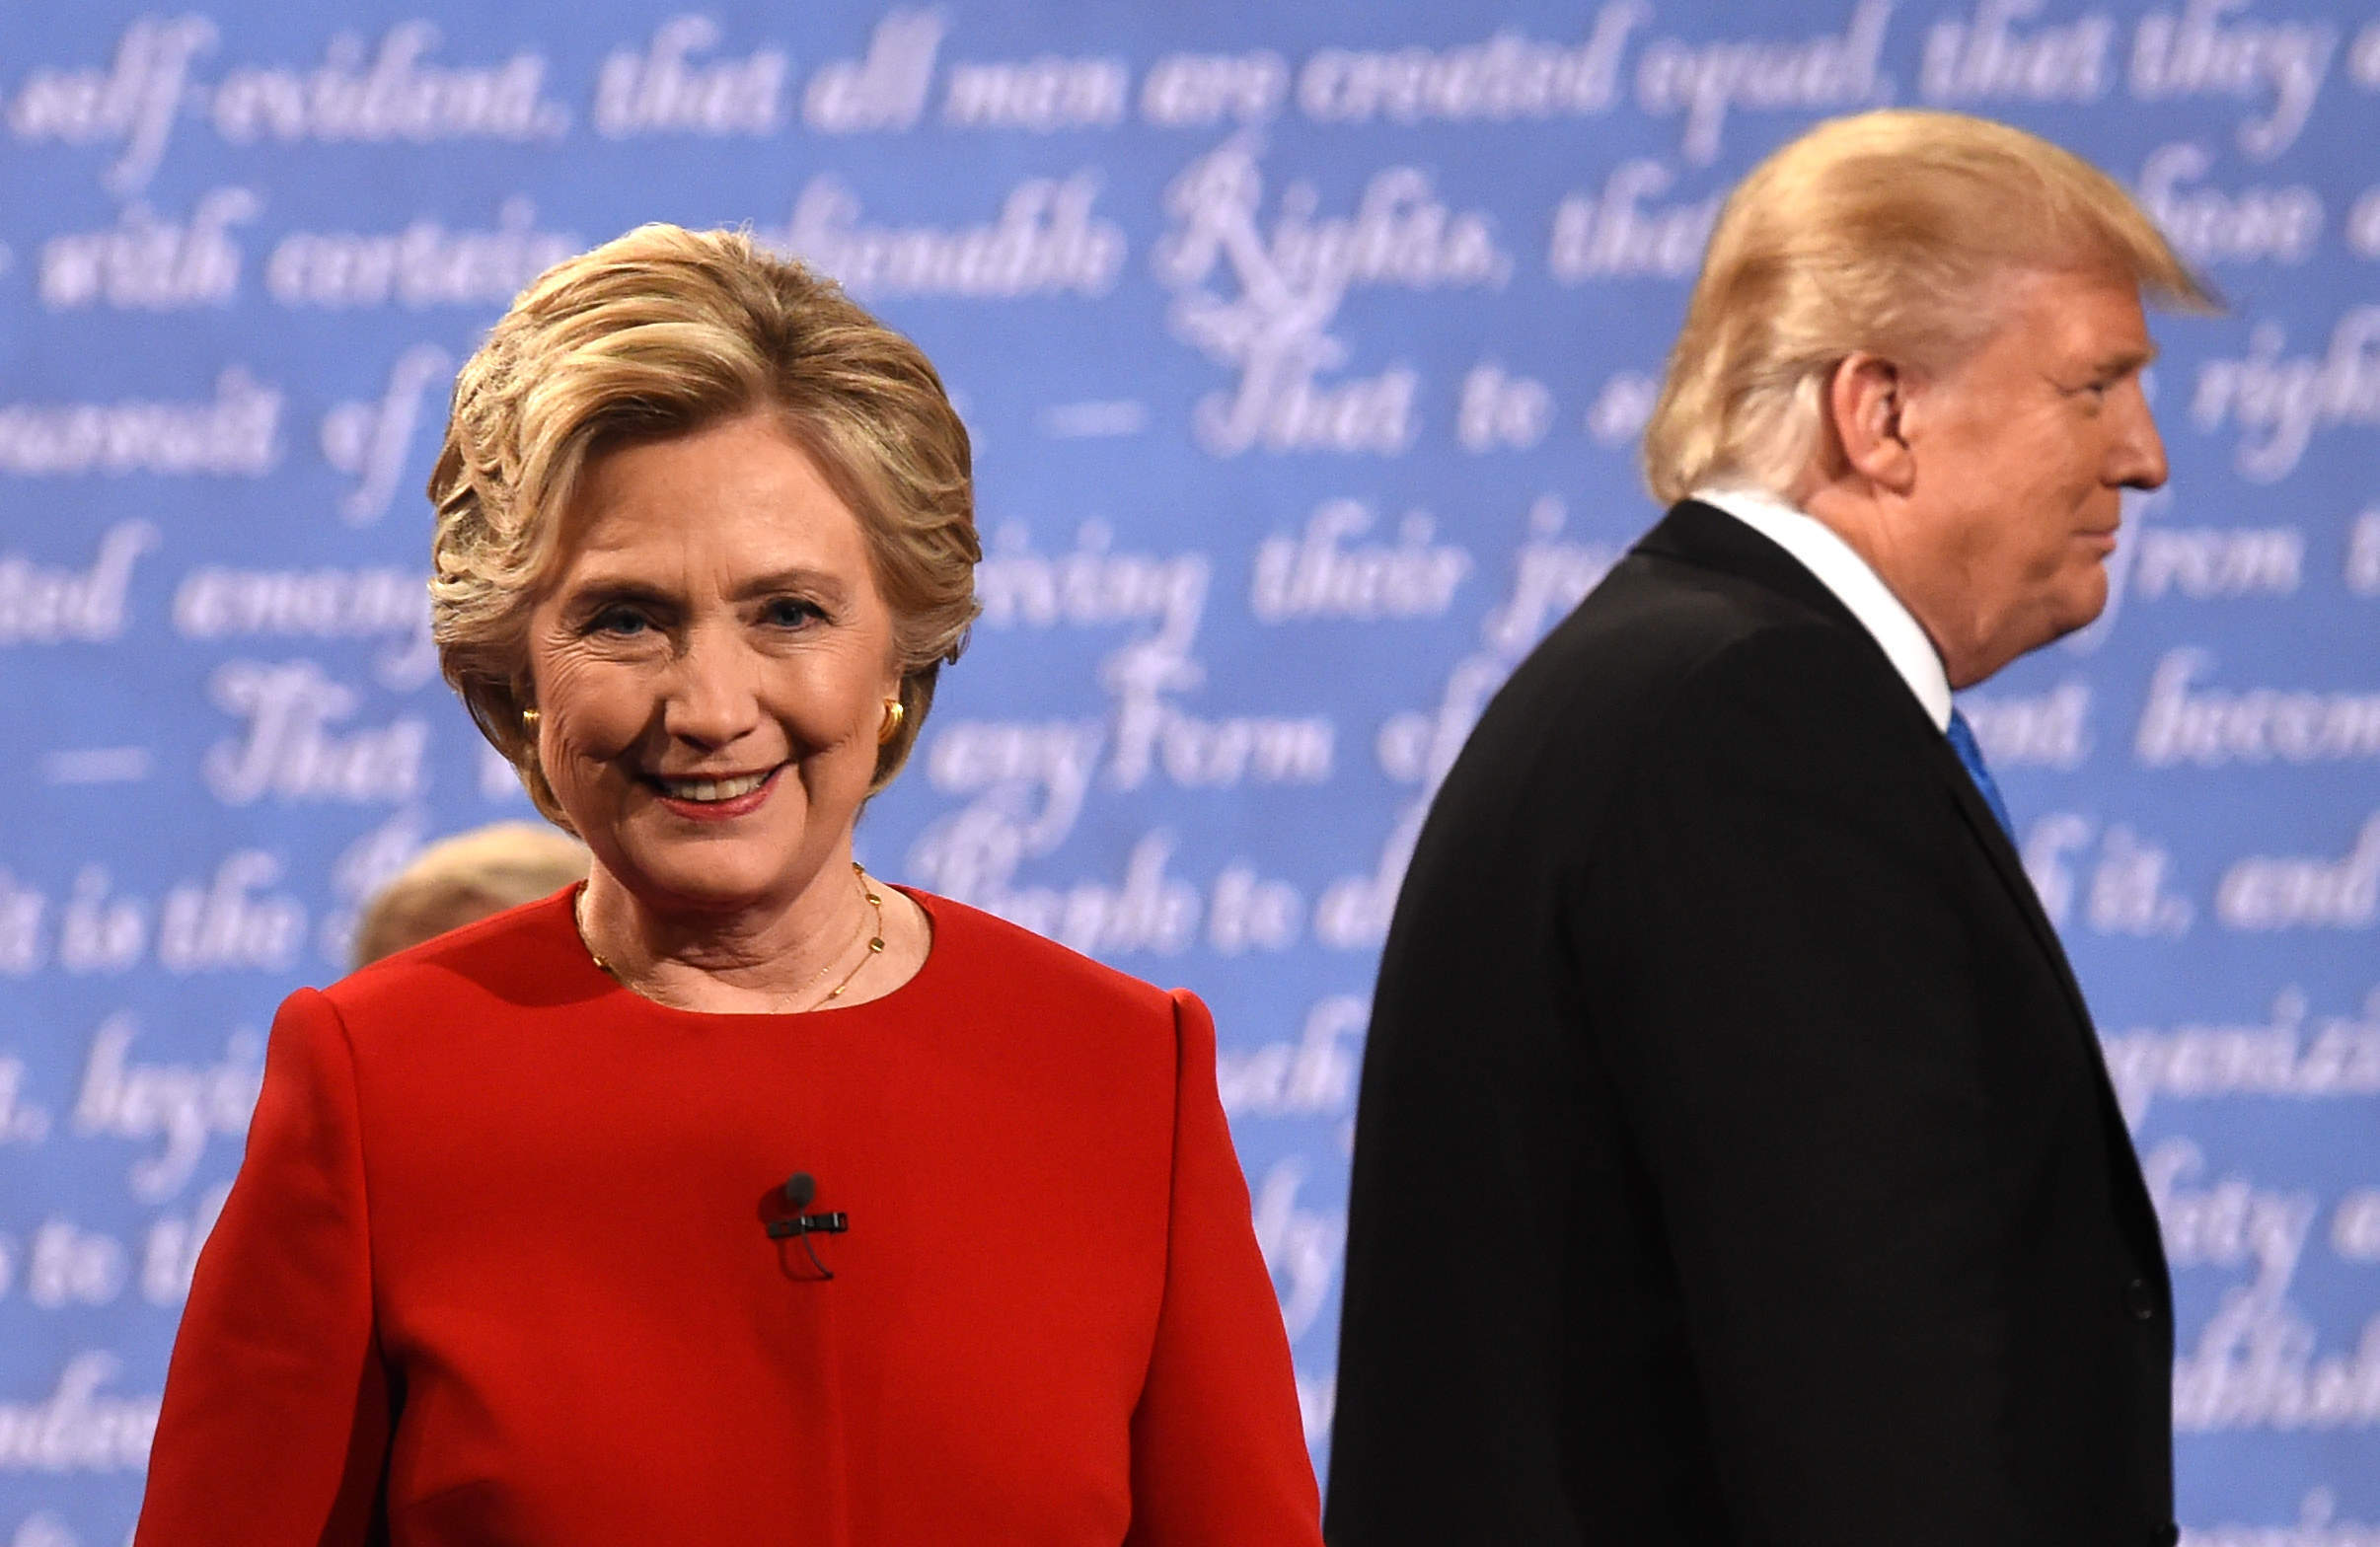 Clinton vs Trump: why it matters that progressives do not have a horse in the presidential race